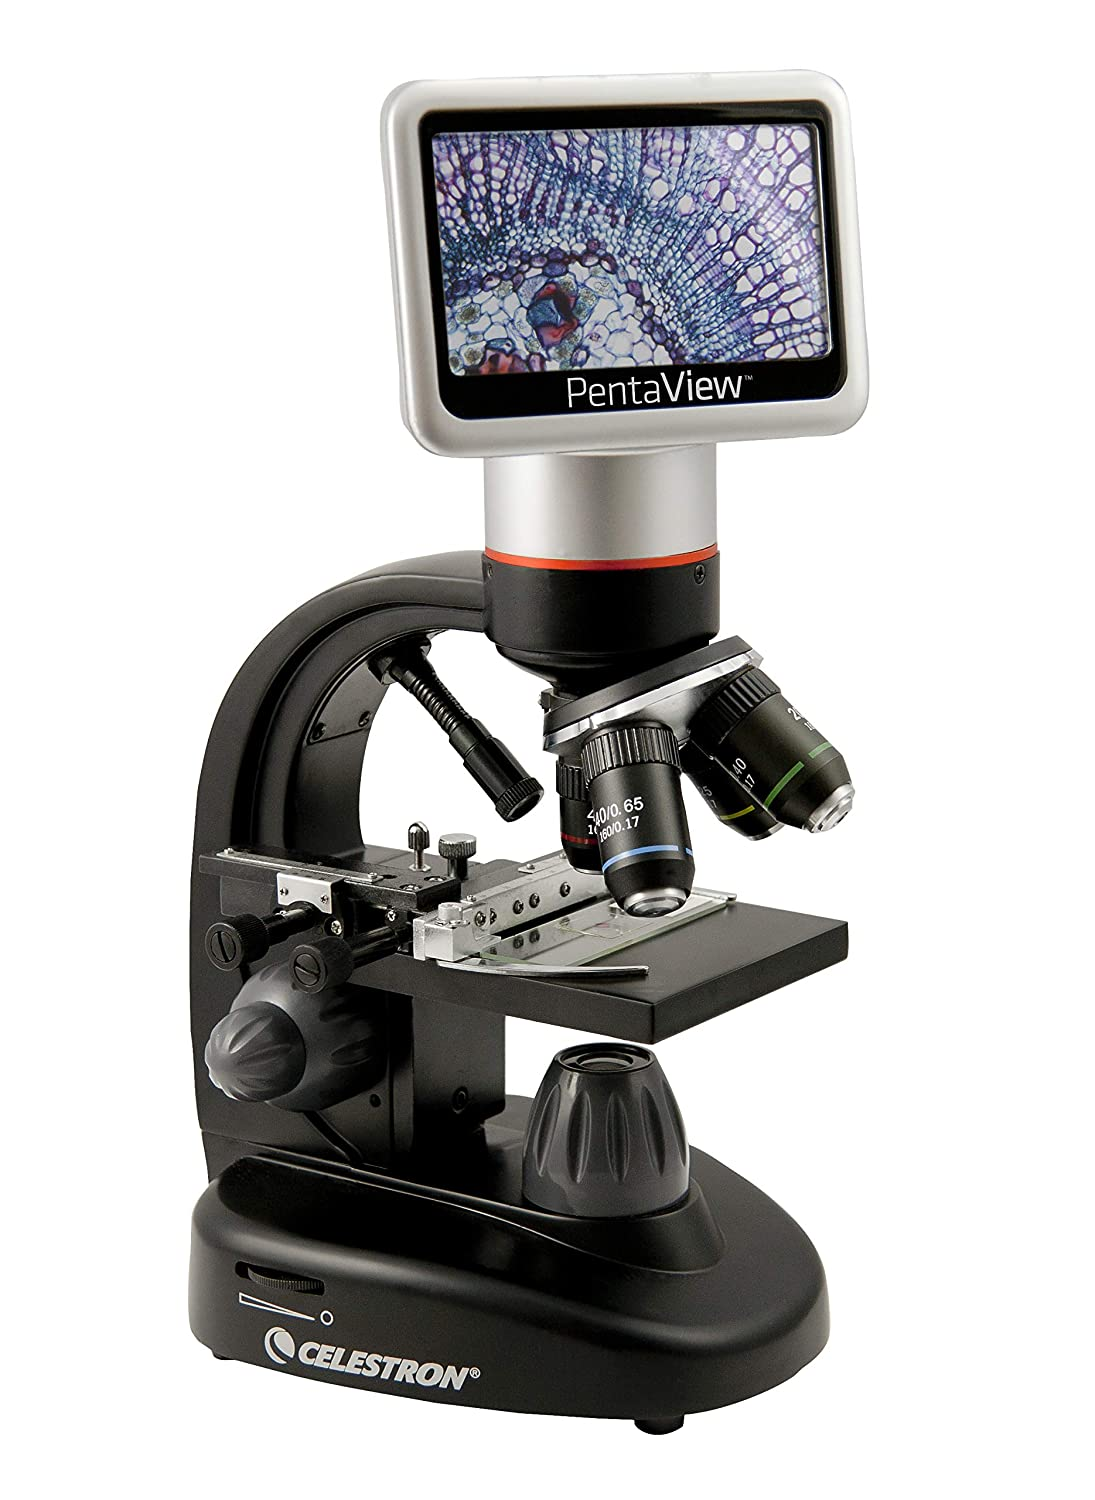 Celestron PentaView 5 MP LCD Digital Microscope